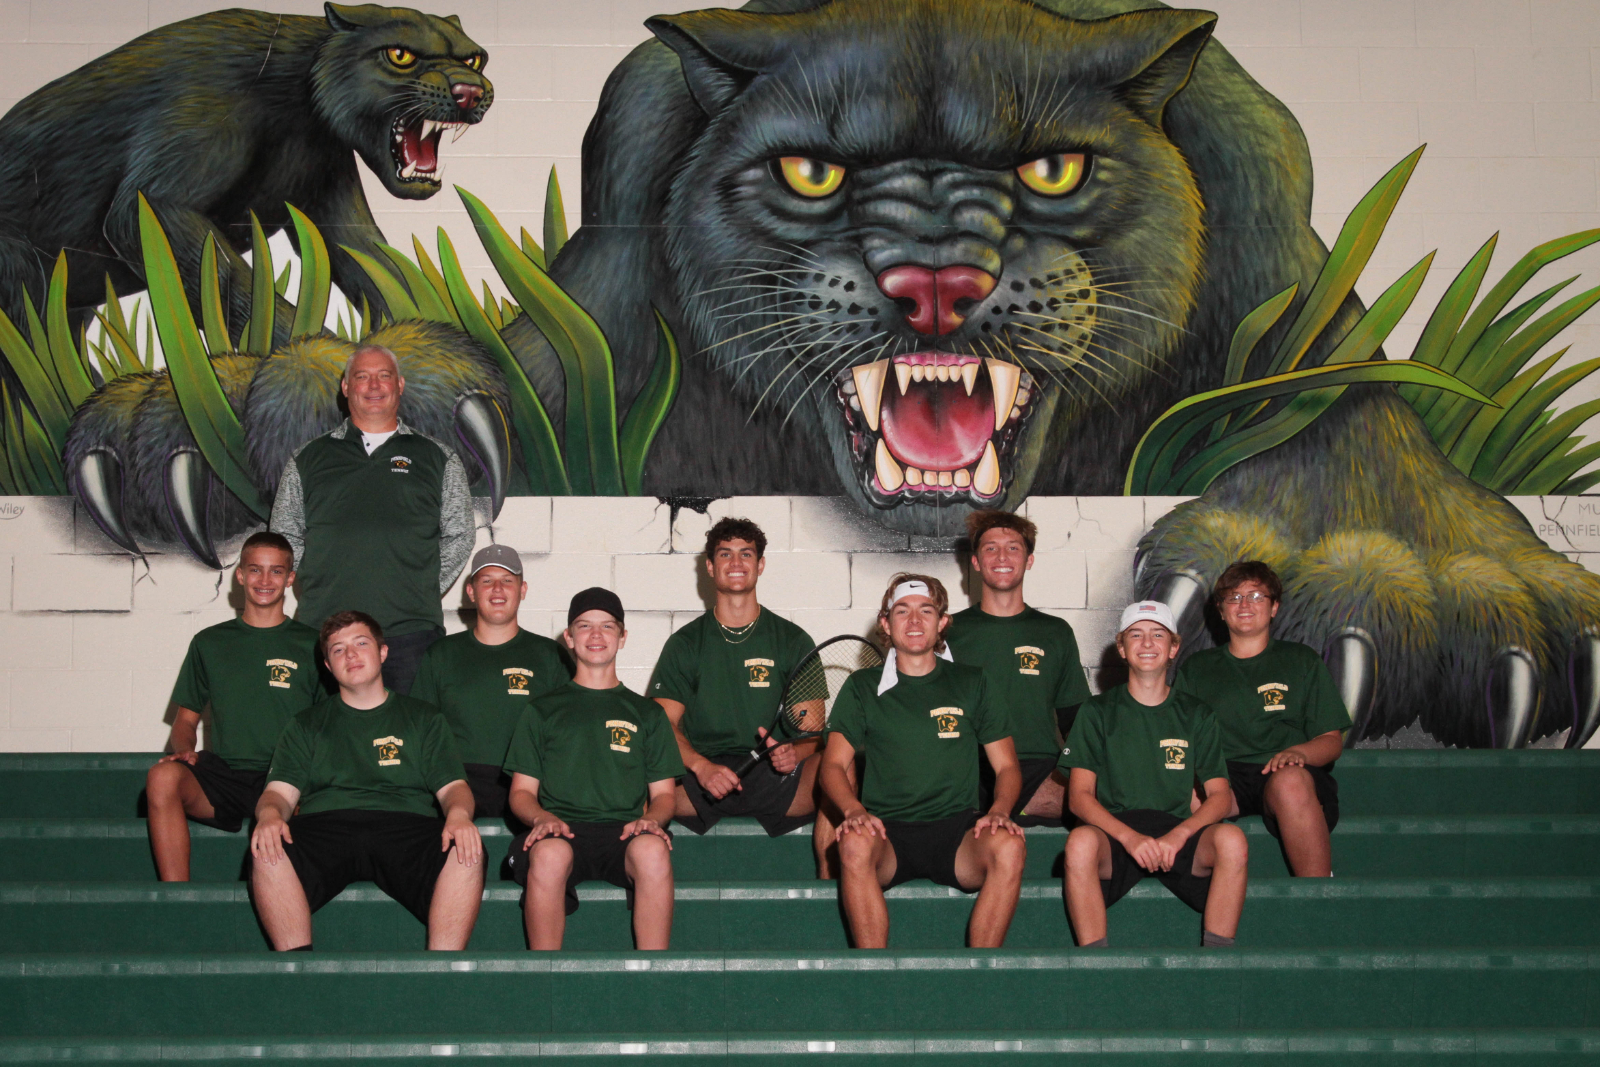 20-21 Pennfield High School Boys Tennis Team